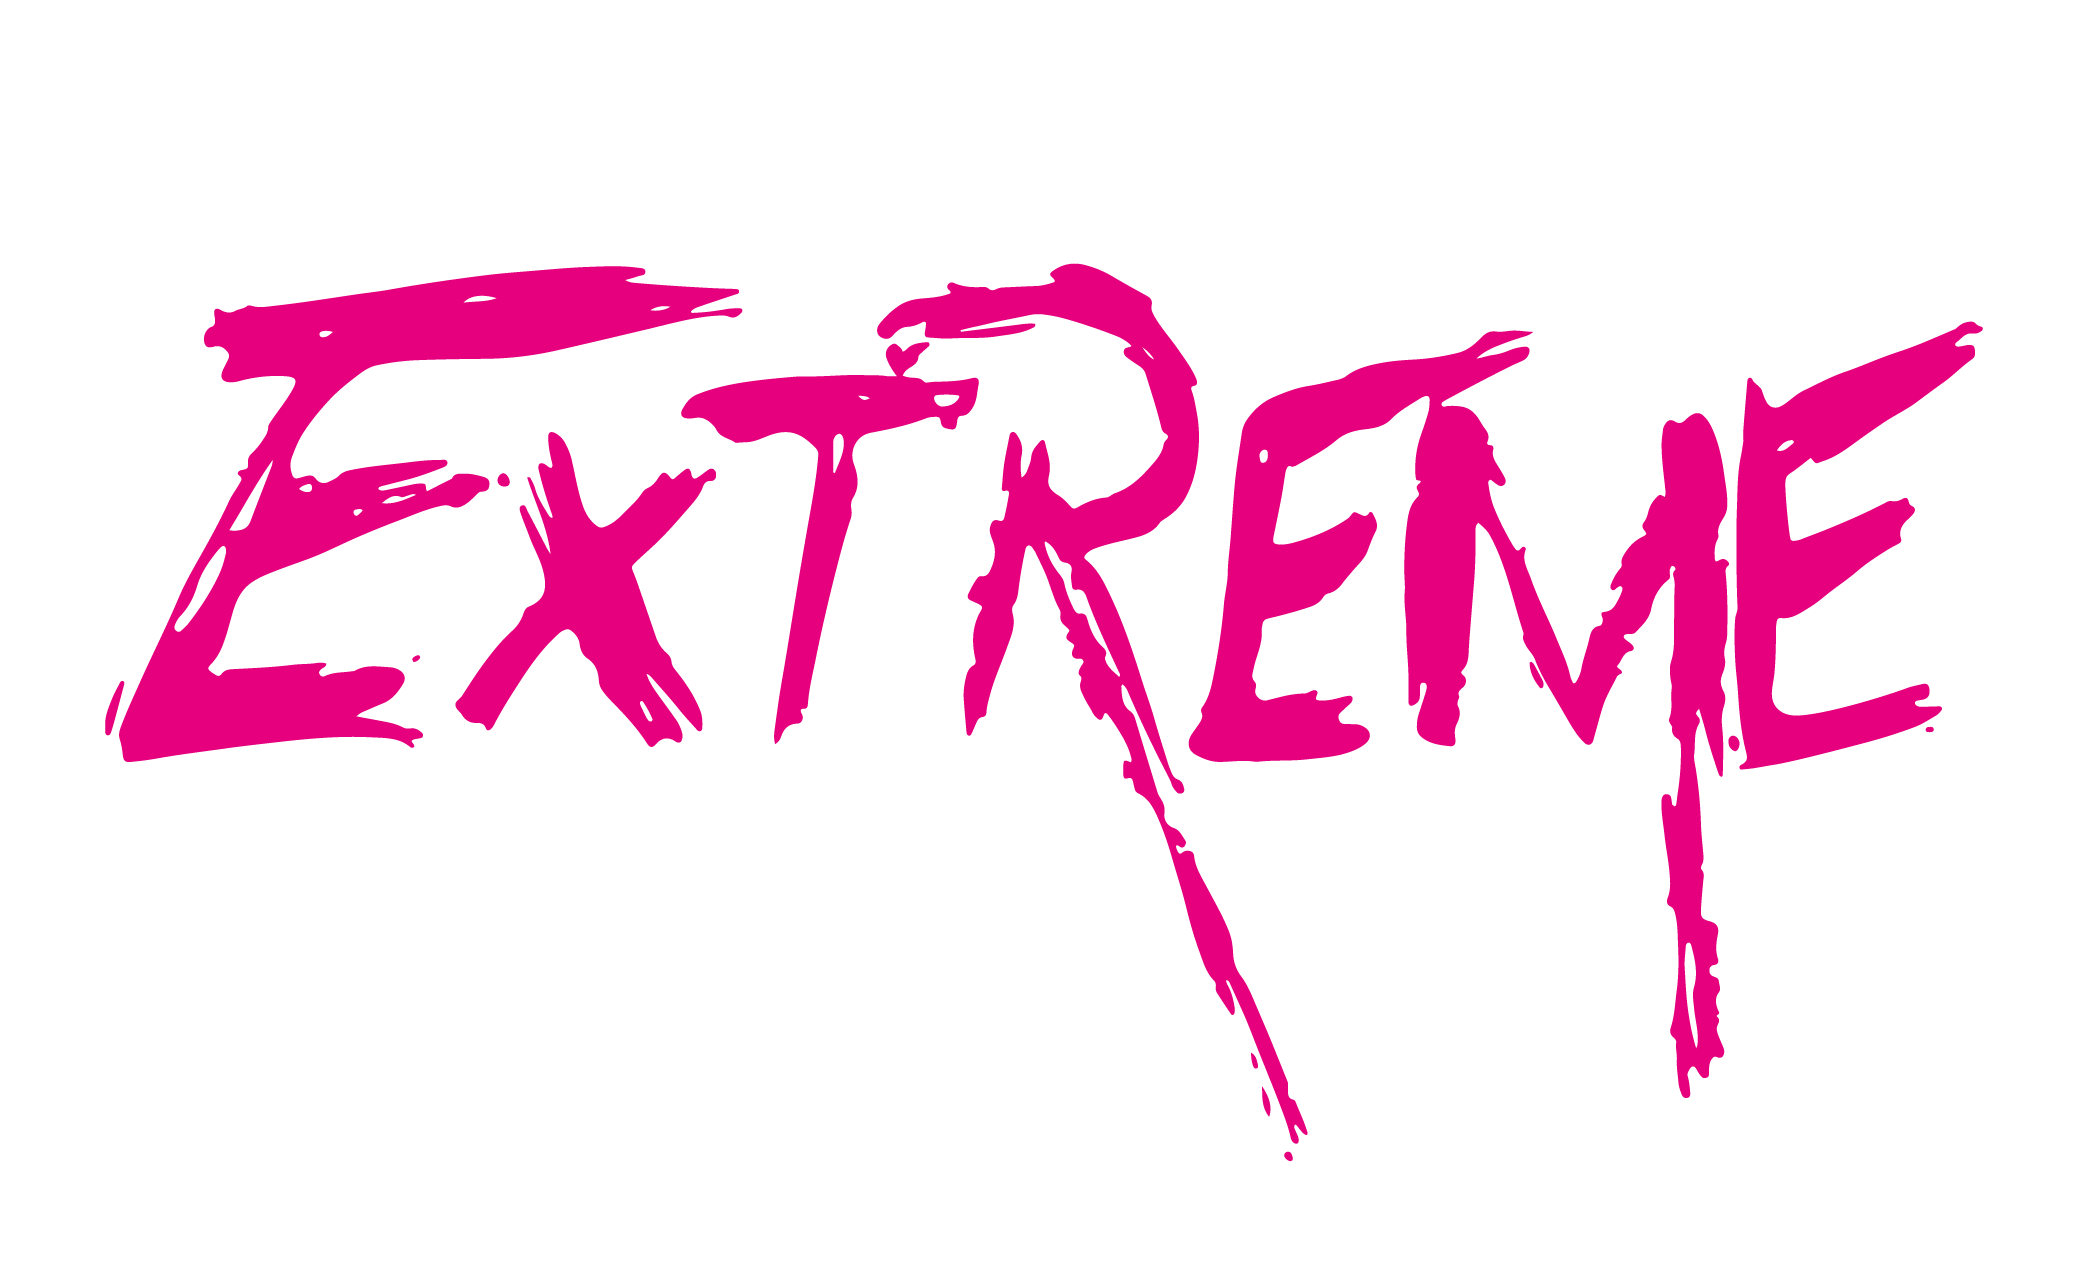 Gallery Extreme